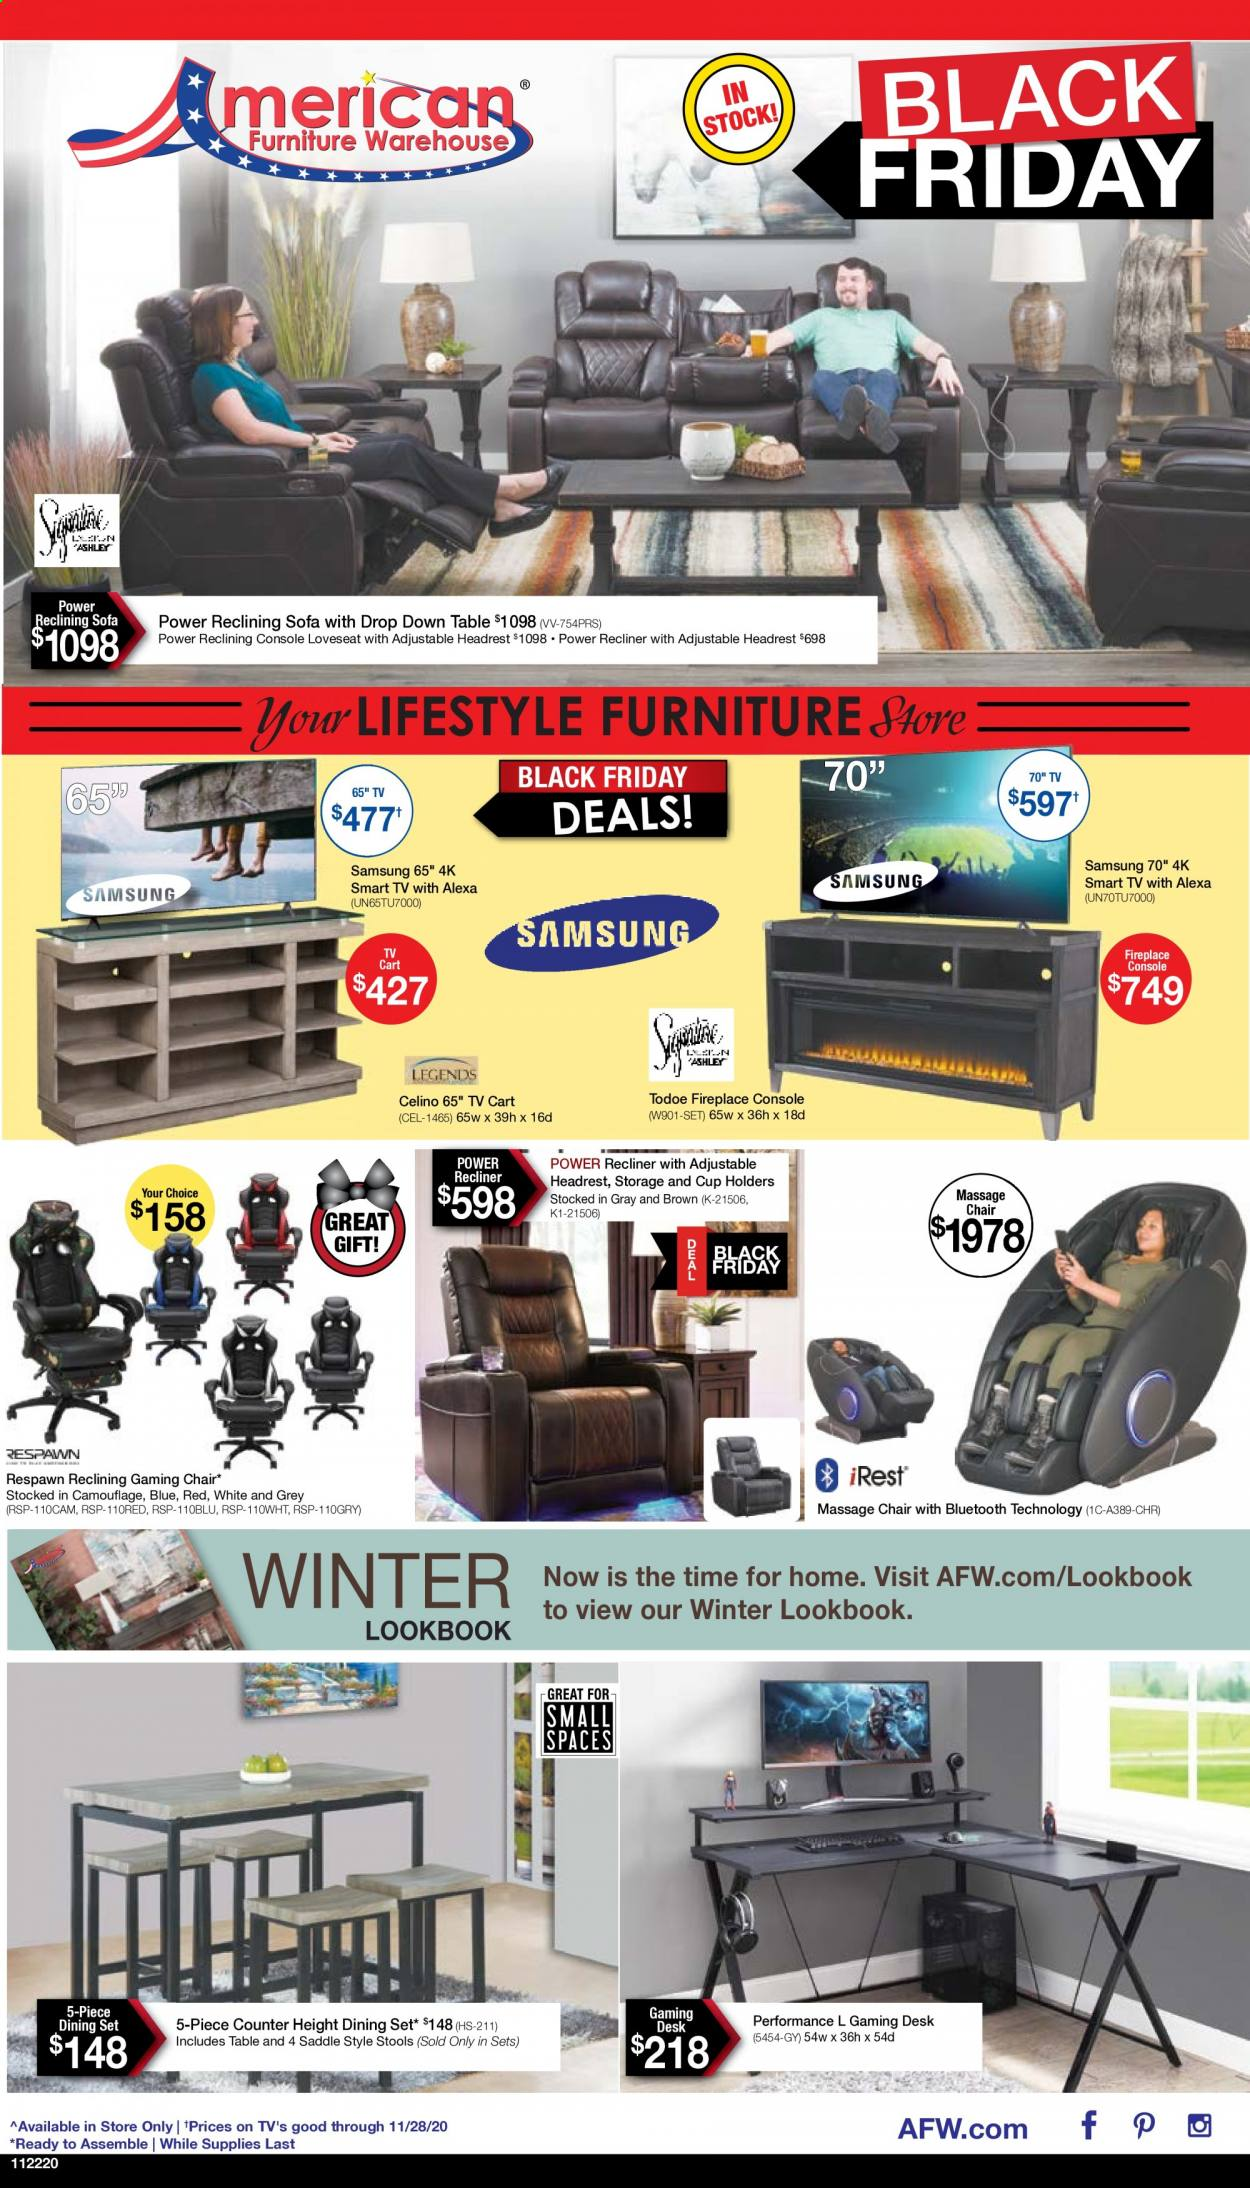 American Furniture Warehouse Flyer - 11.22.2020 - 11.28.2020 - Sales products - cart, dining set, fireplace, Furniture, loveseat, Samsung, smart tv, sofa, table, chair, gaming chair. Page 1.